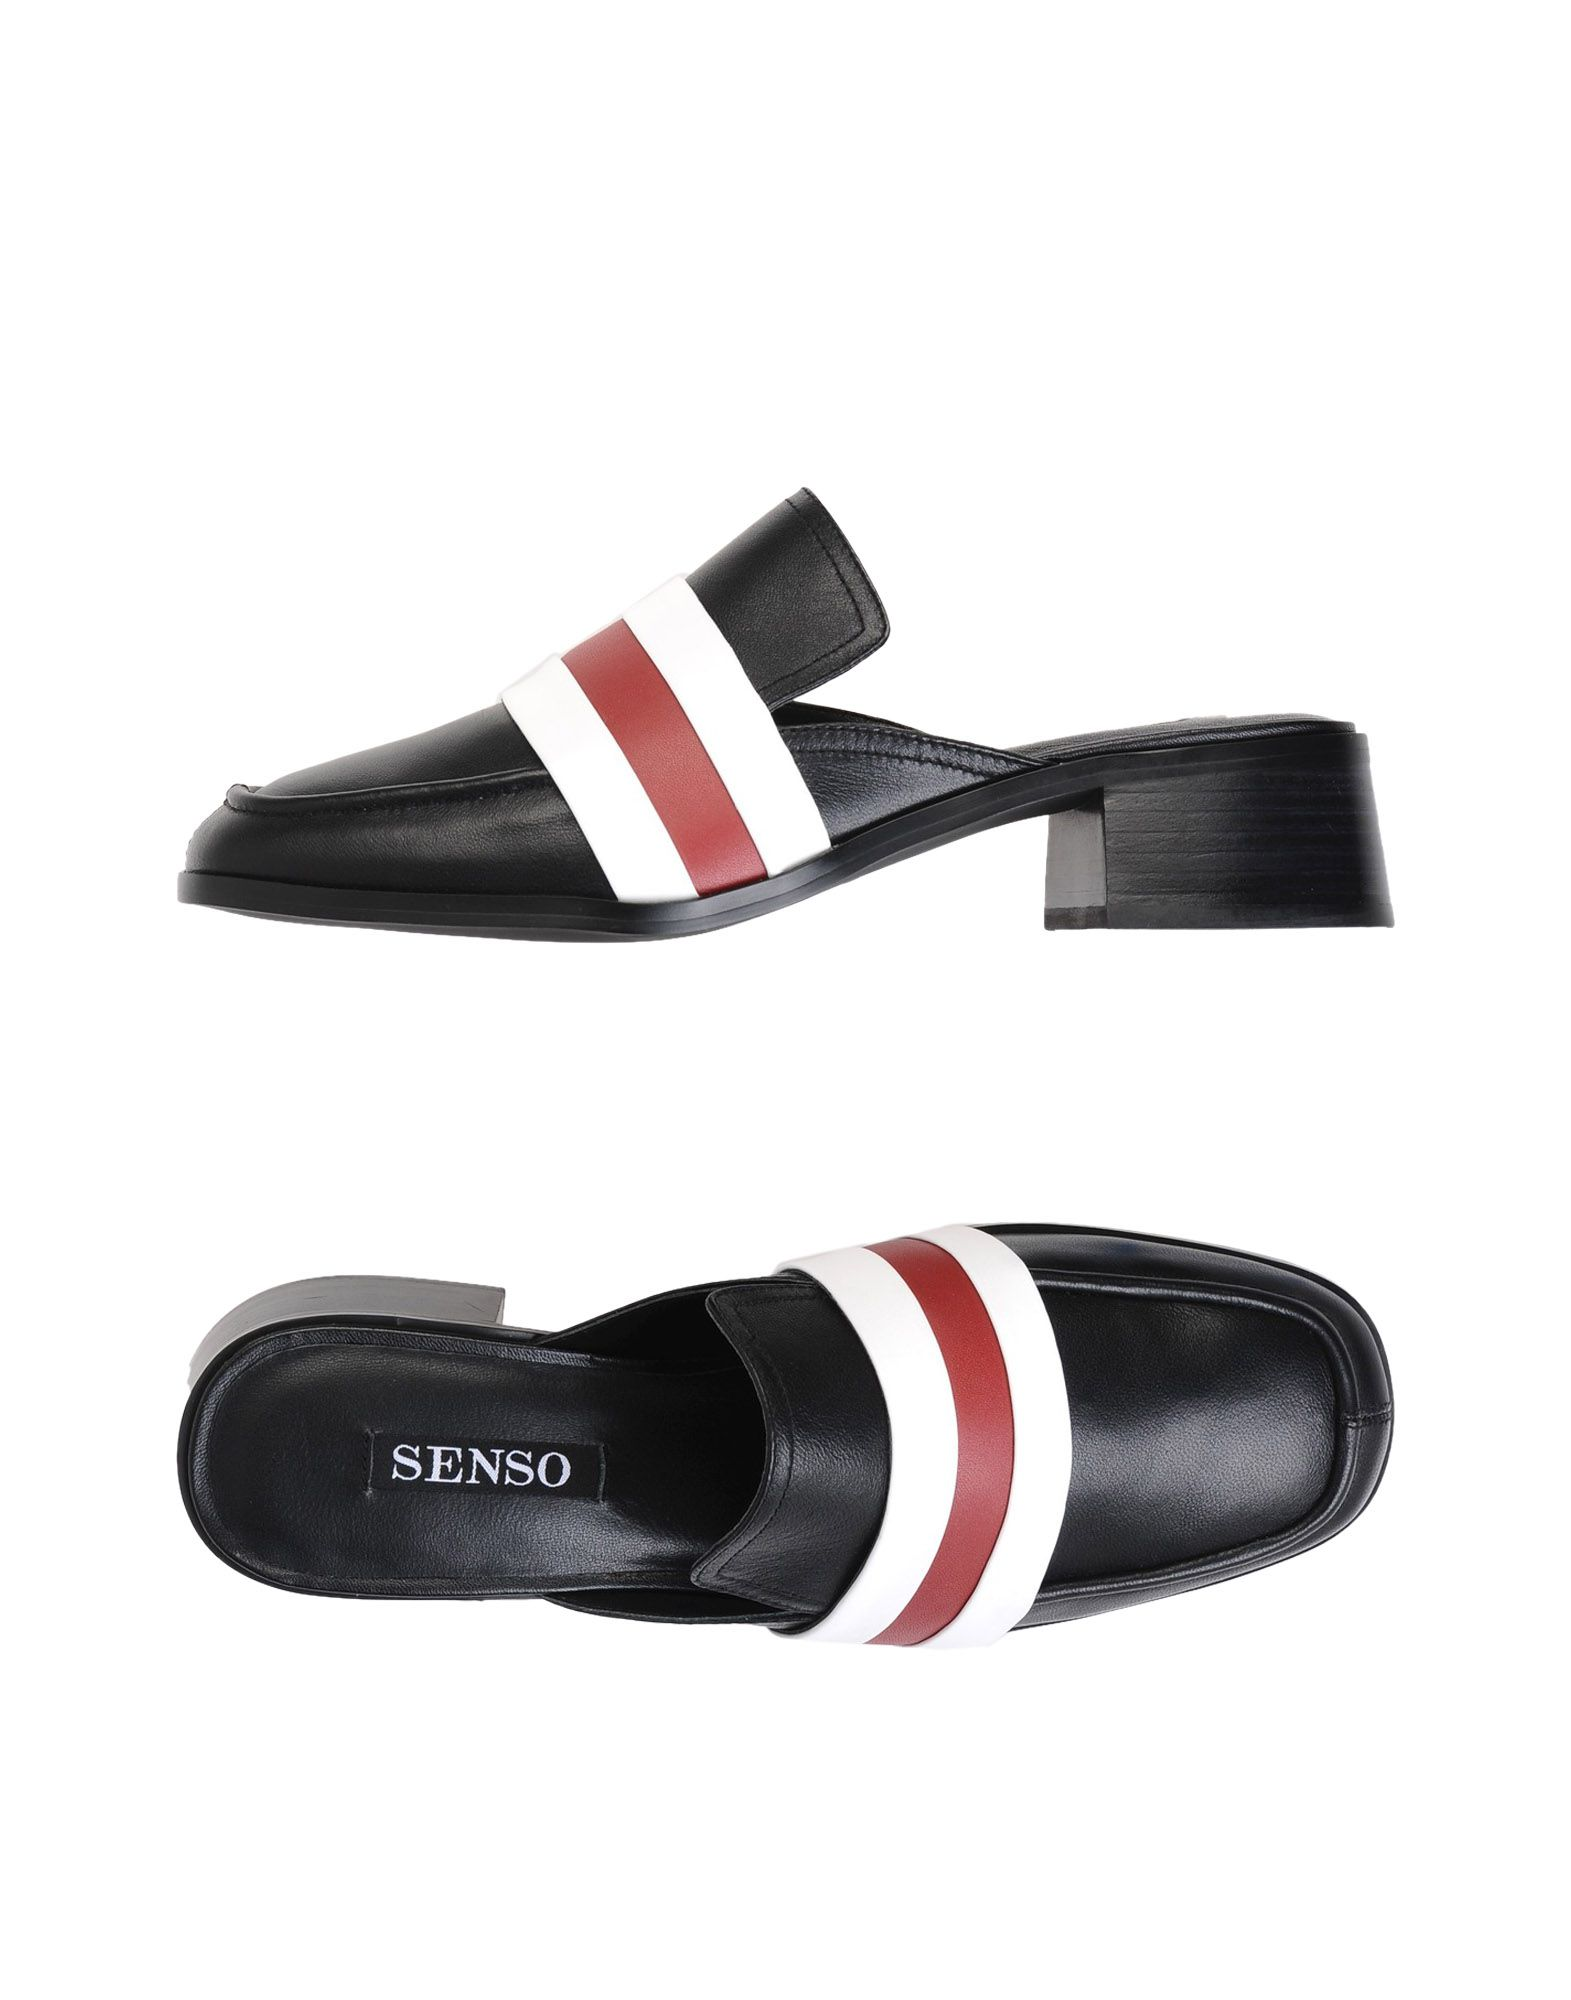 Mules Senso Esther I Sheep Nappa/Calf Wine - Femme - Mules Senso sur